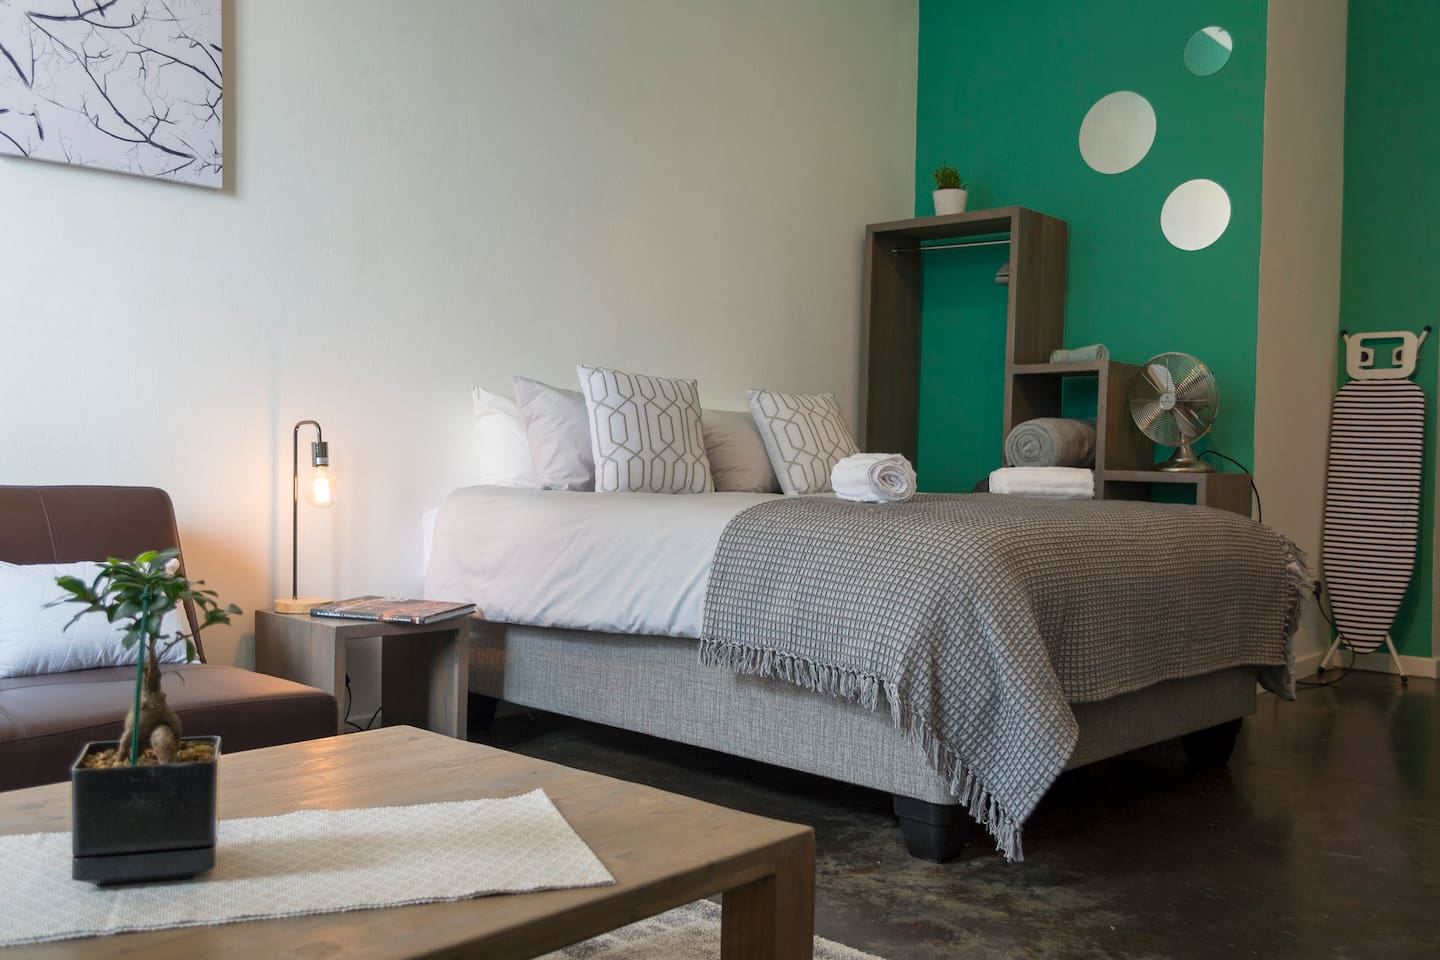 A comfy bed and luxurious linen, nothing less for the guests of Uuka lounge